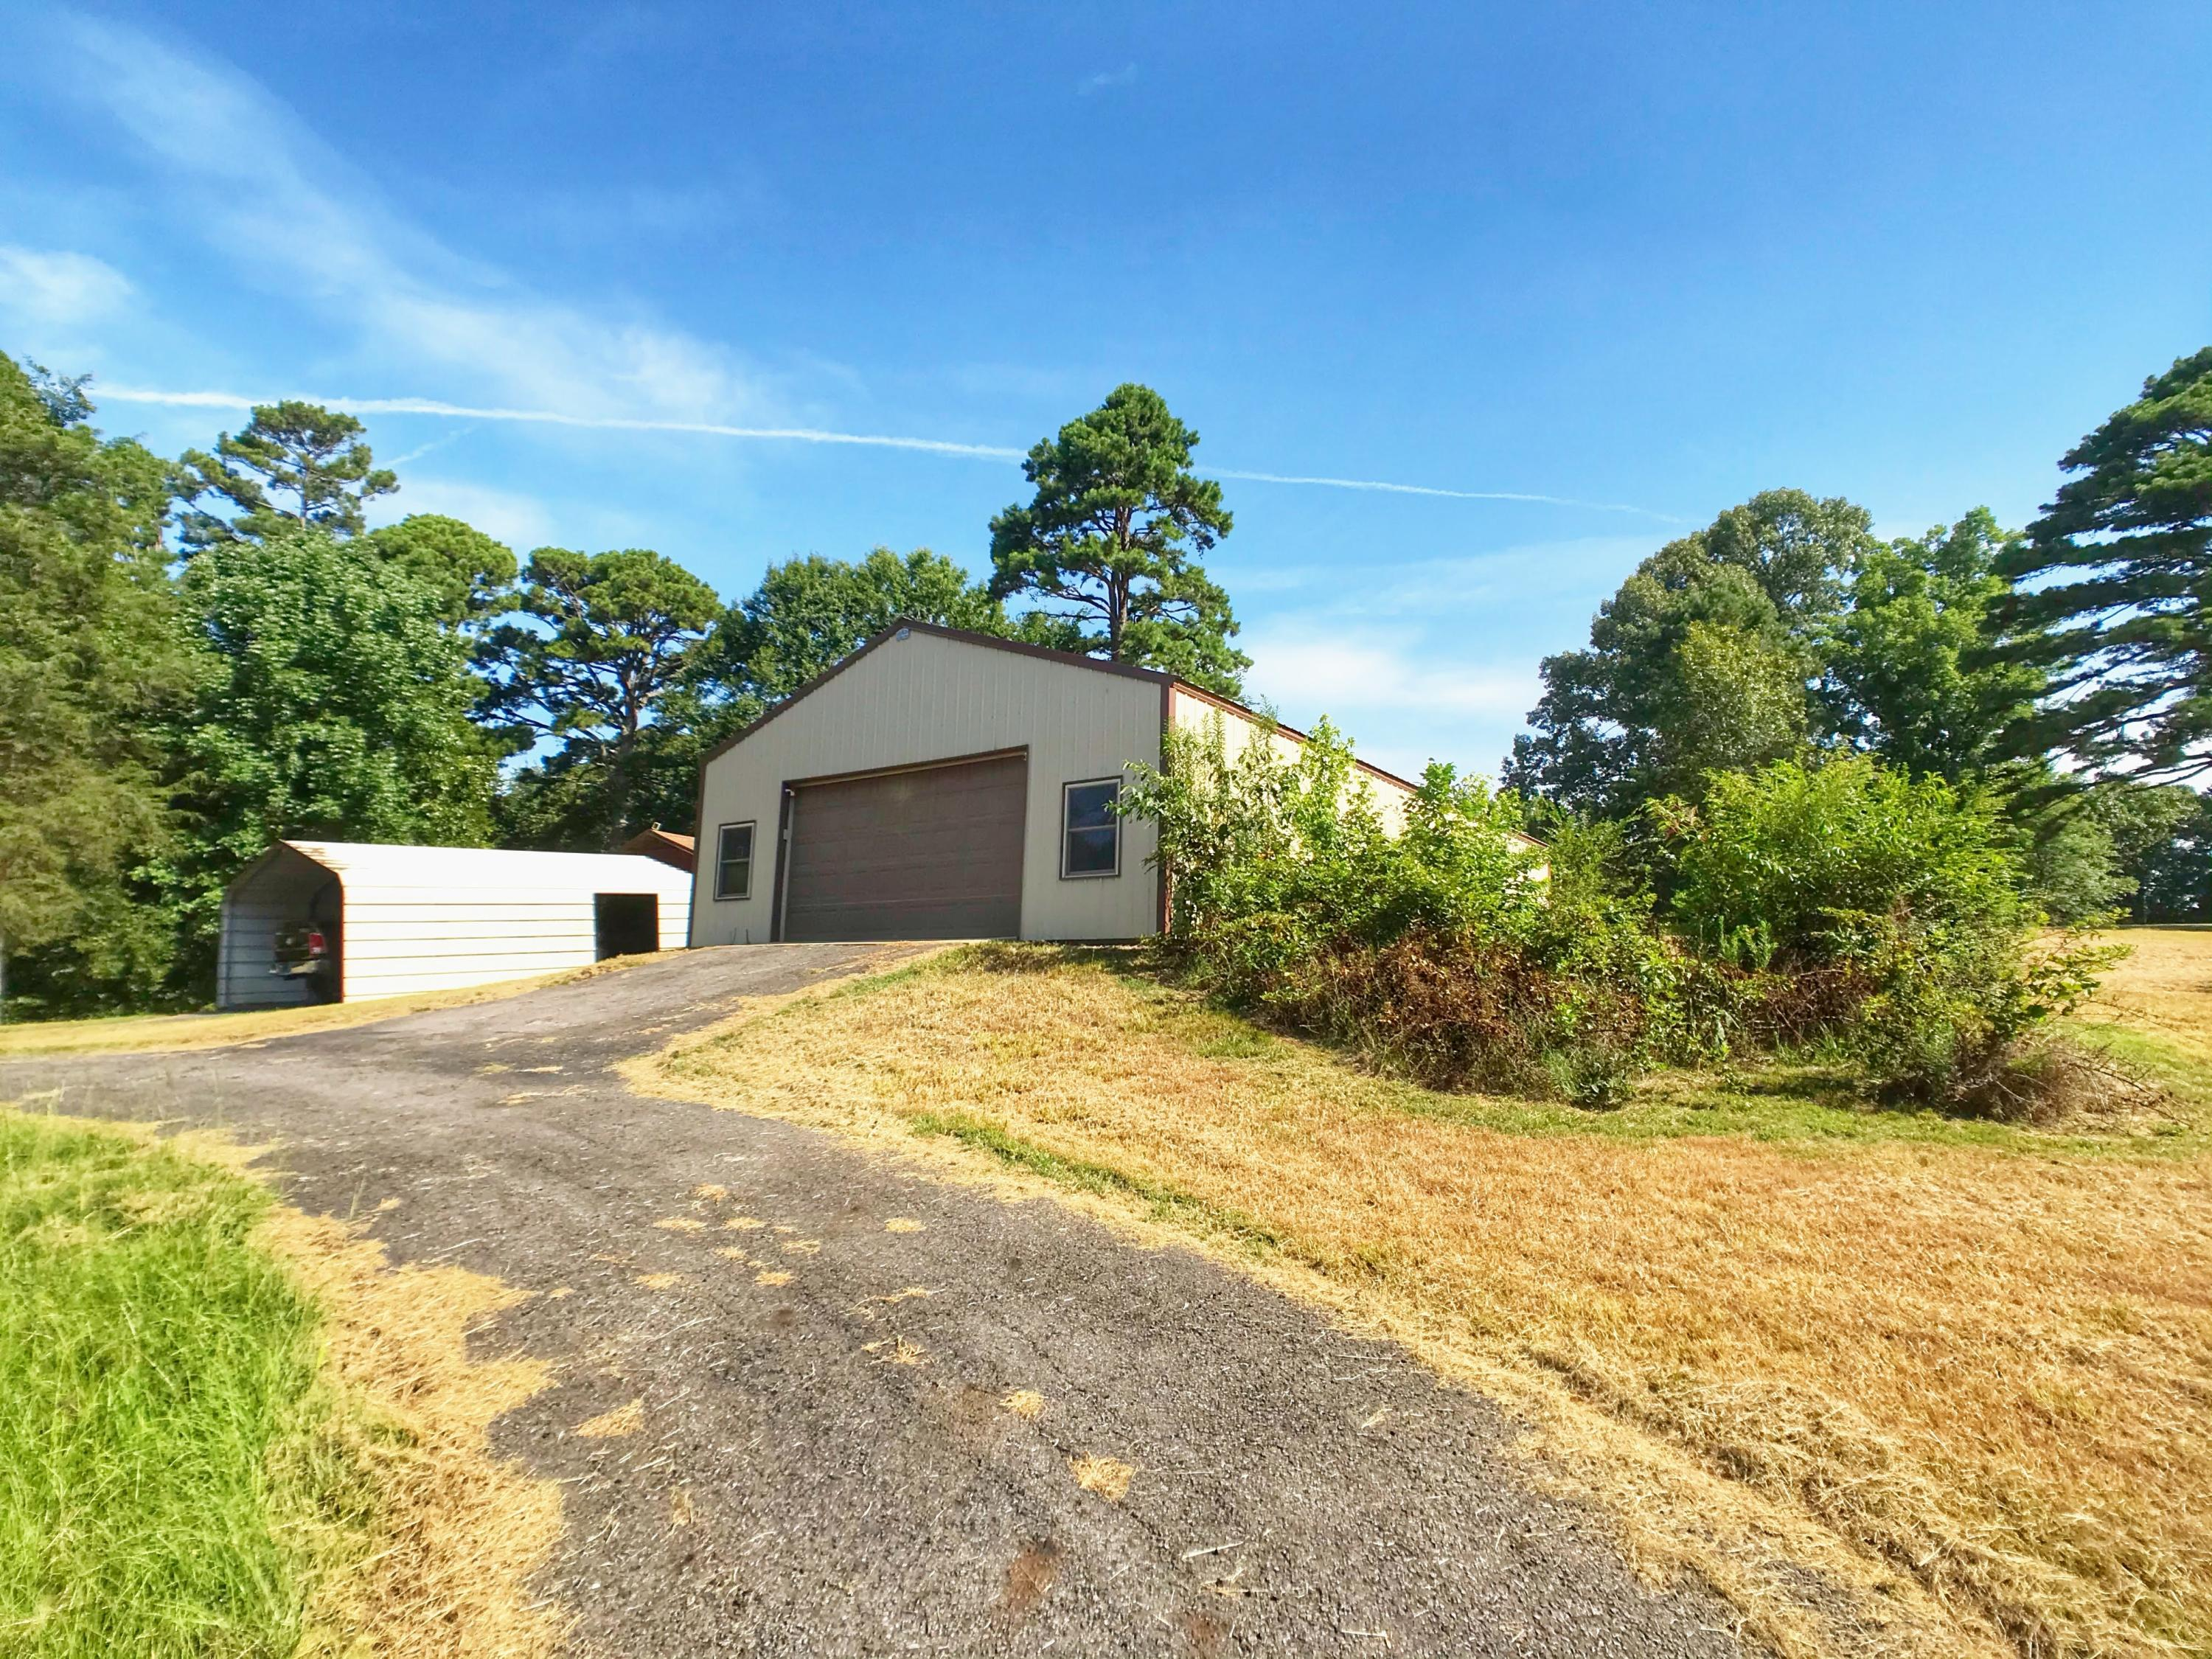 Large photo 3 of home for sale at 1730 Dwight Mission Road, Russellville, AR